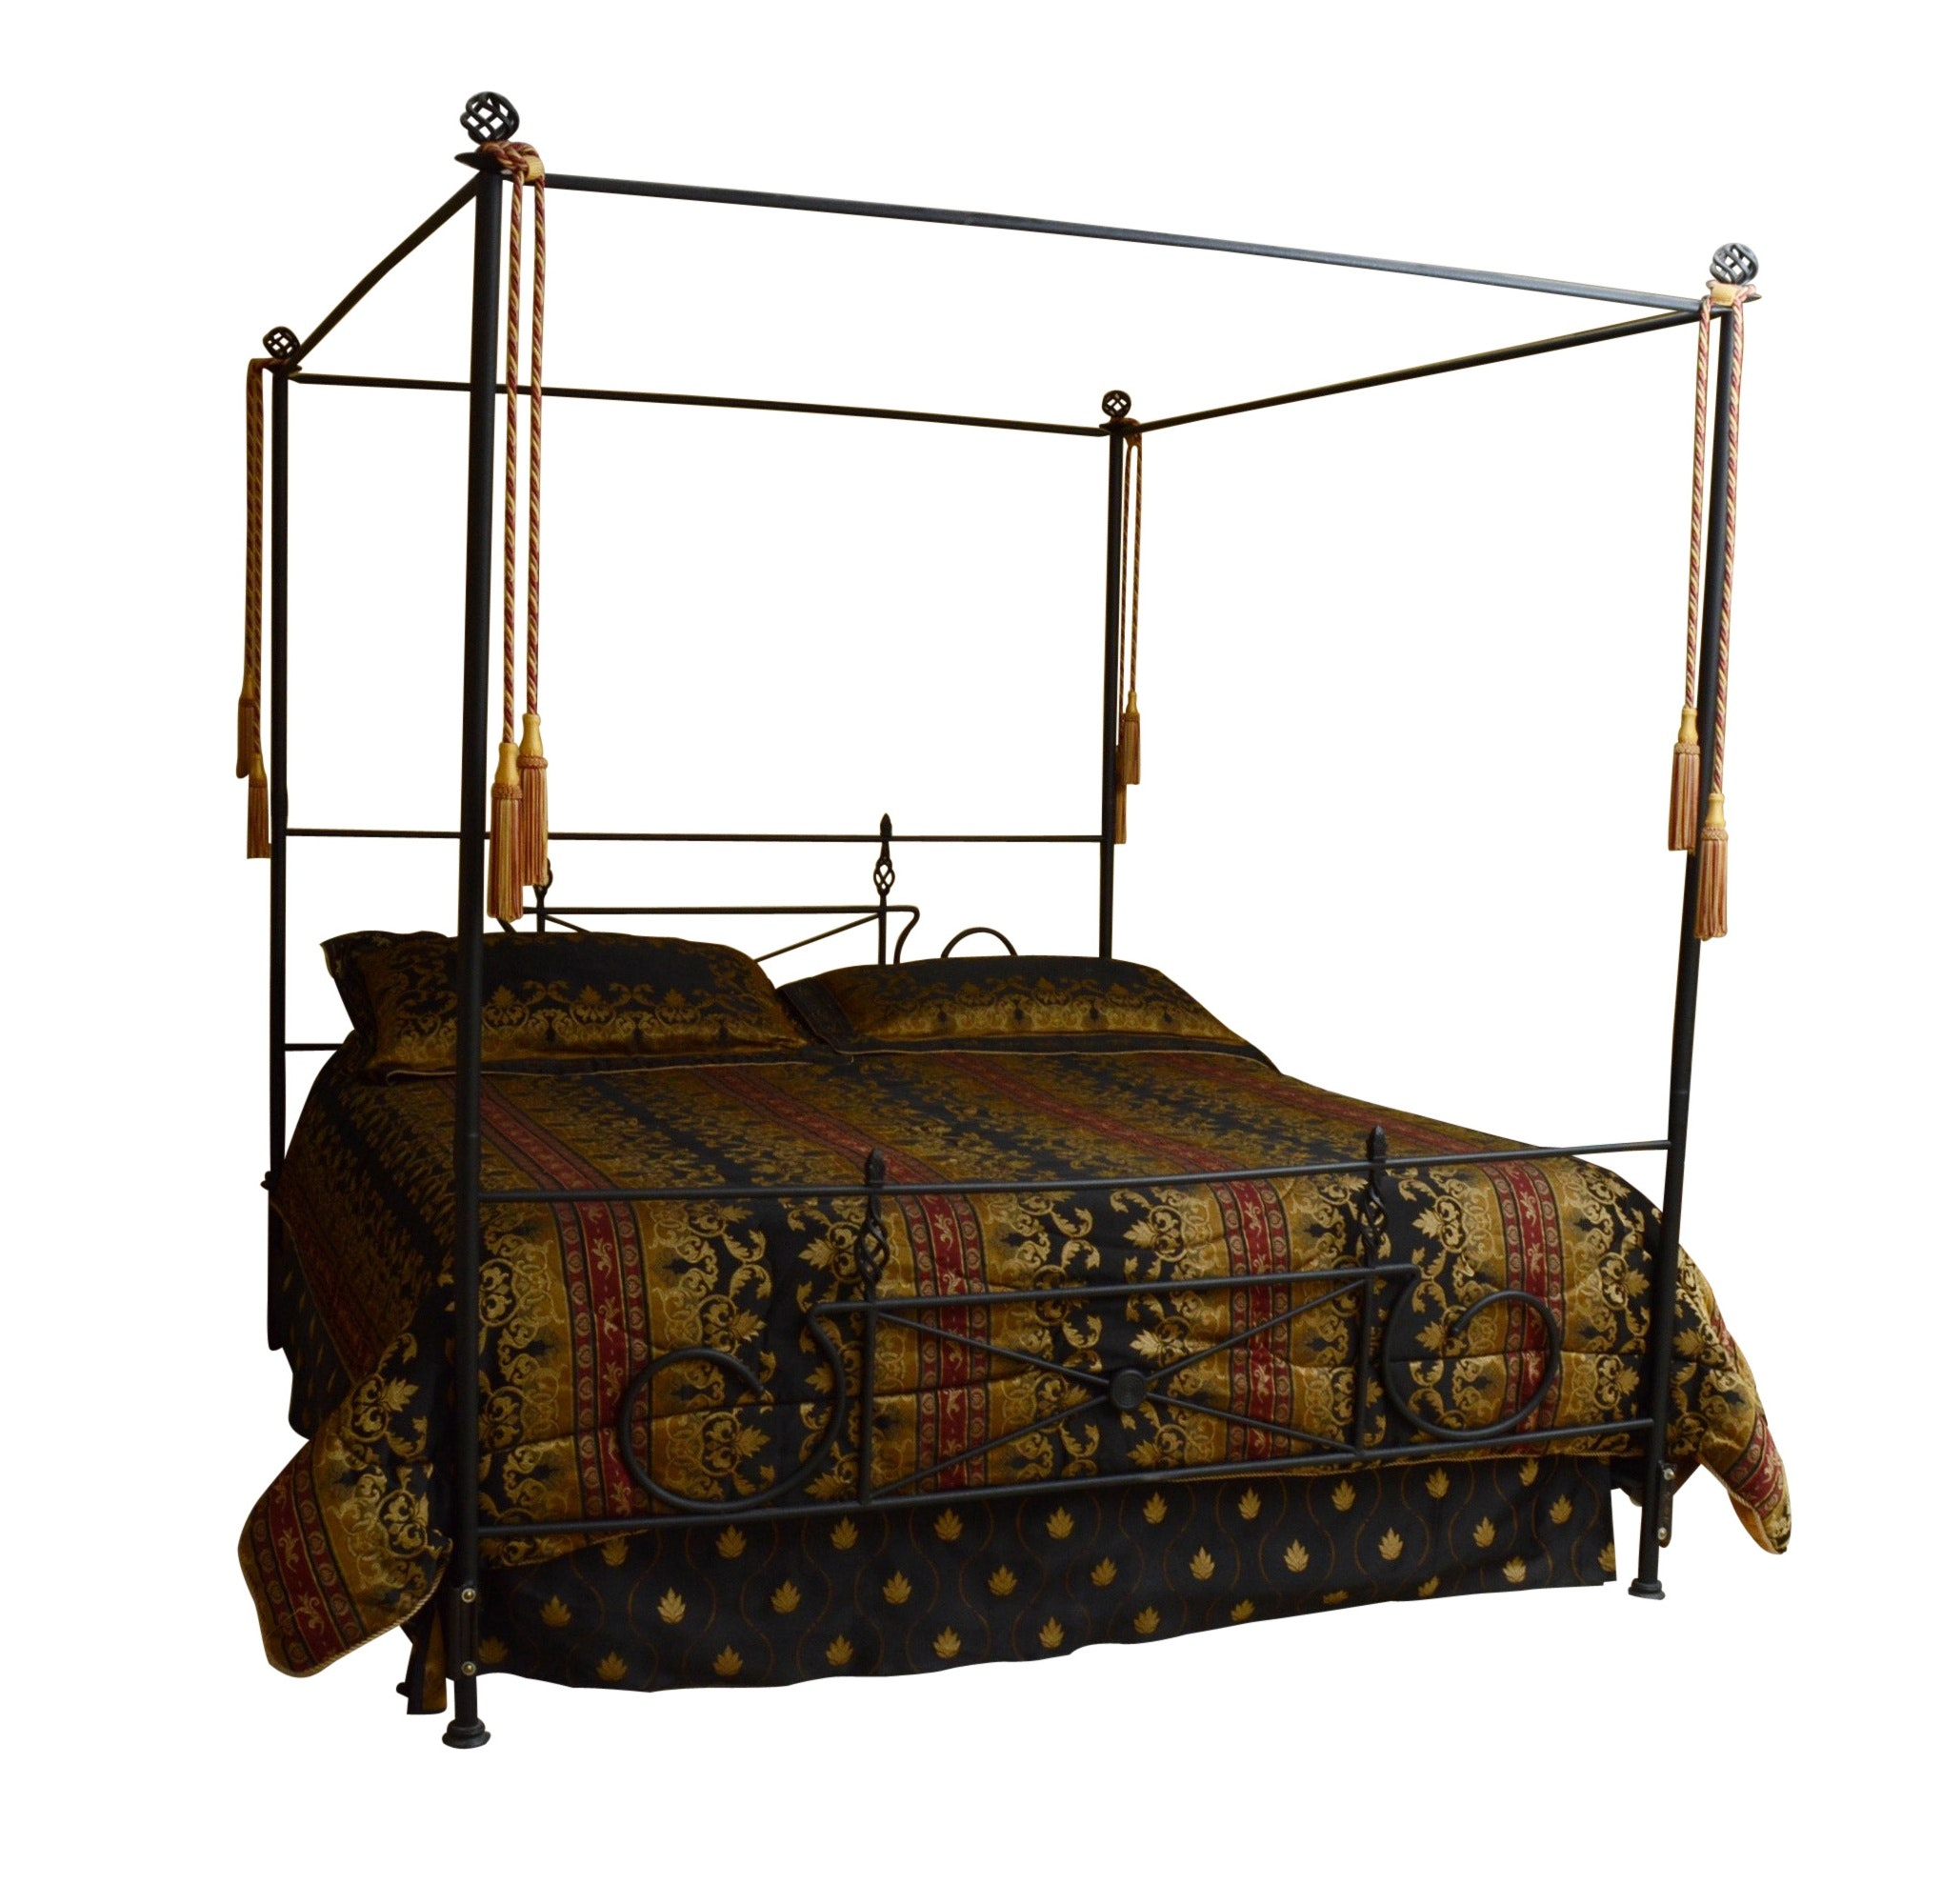 Wrought Iron Four Poster Bed (King)